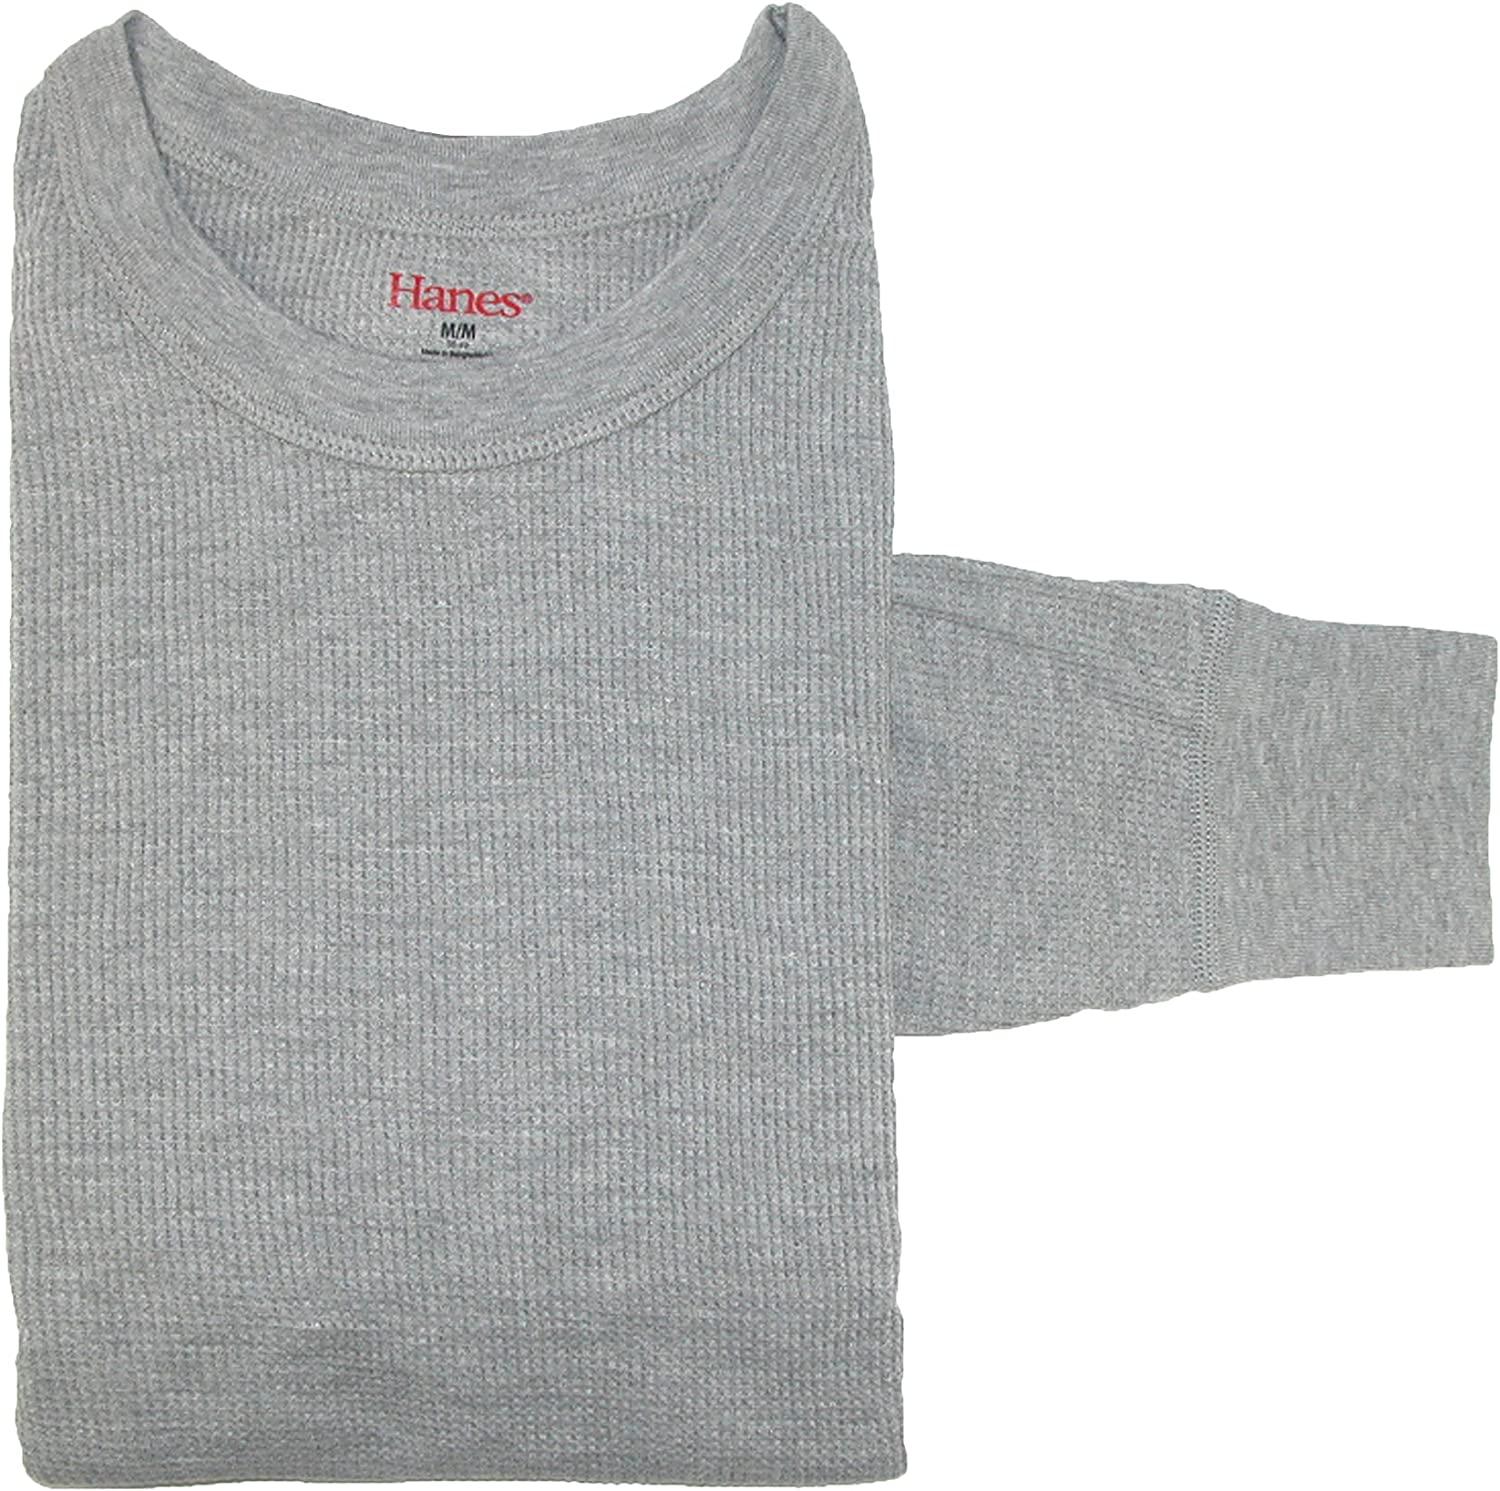 Hanes Mens Sueded Waffle Knit Top